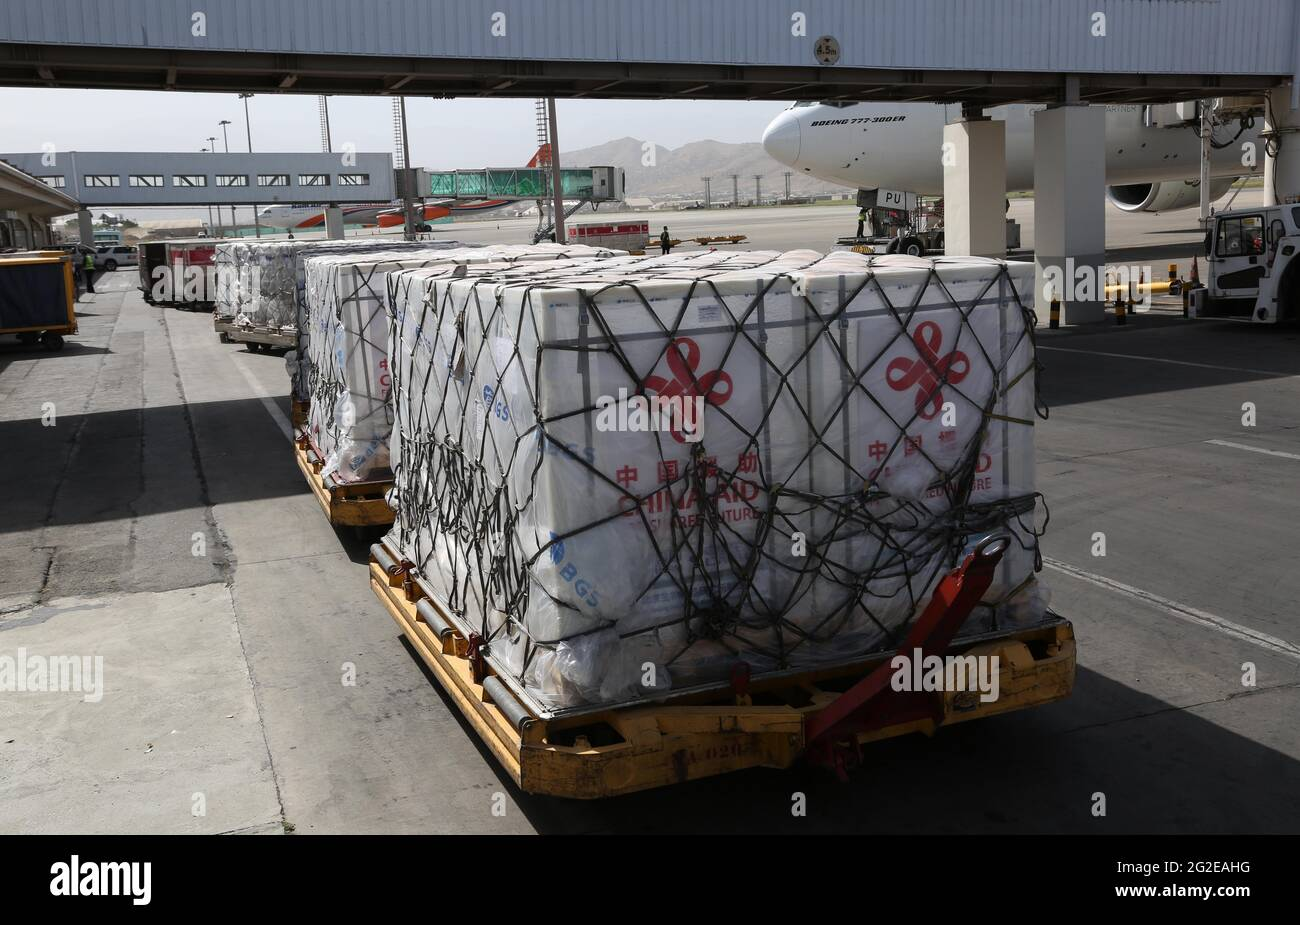 Kabul, Afghanistan. 10th June, 2021. Photo taken on June 10, 2021 shows packages of Chinese COVID-19 vaccines arriving at the Hamid Kazia International Airport in Kabul, capital of Afghanistan. A batch of COVID-19 vaccines donated by the Chinese government arrived in Kabul, the capital of Afghanistan on Thursday. Credit: Rahmatullah Alizadah/Xinhua/Alamy Live News Stock Photo